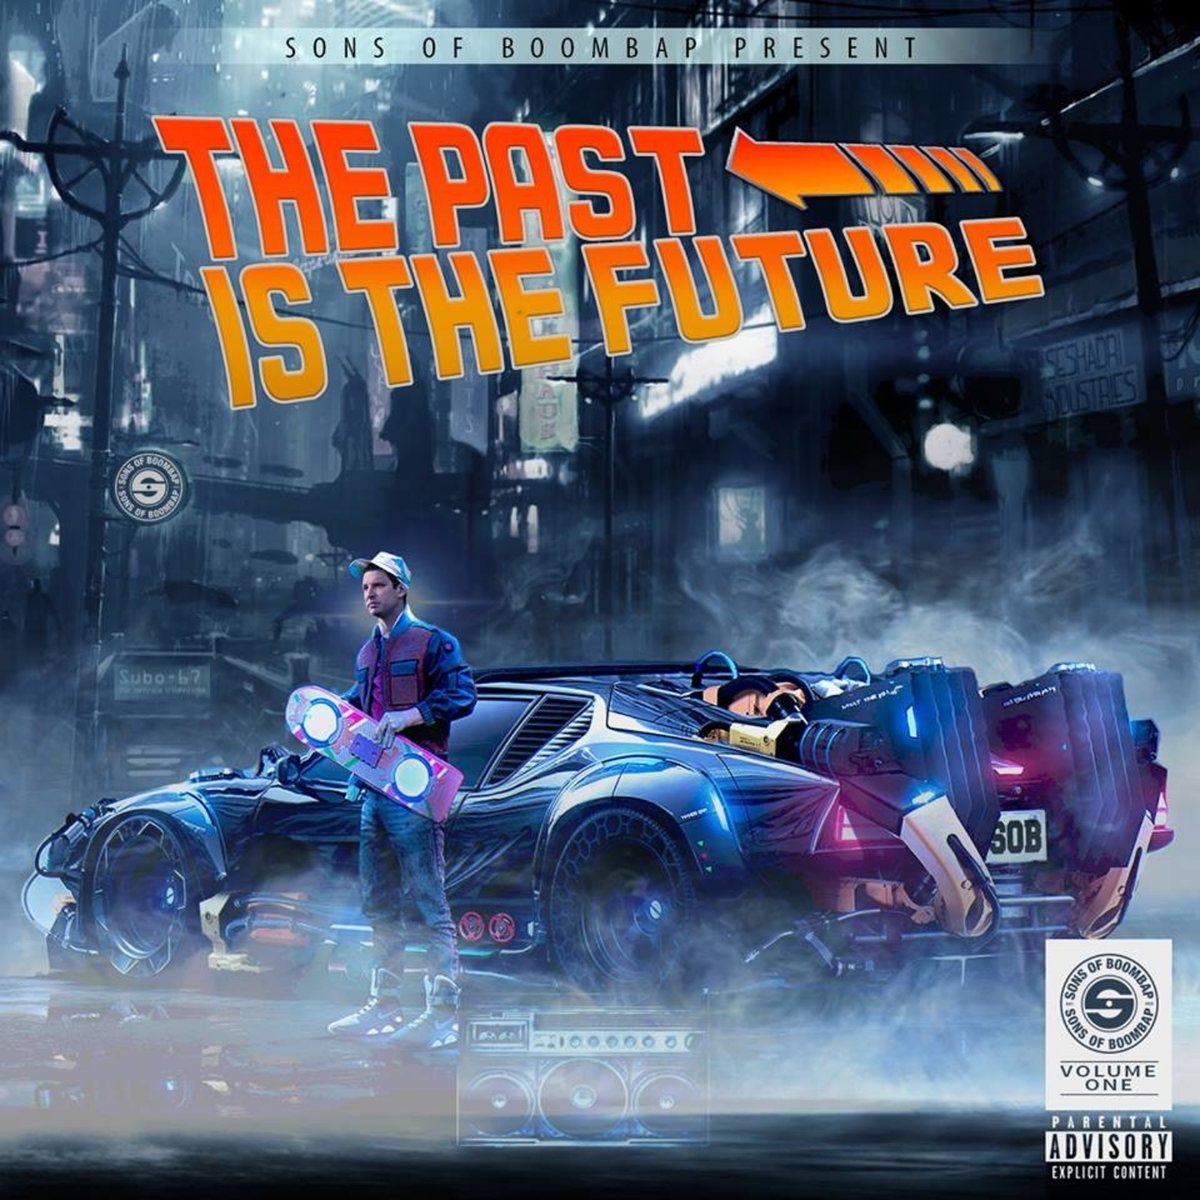 Sons of Boombap Present The Past Is The Future Volume 1.1